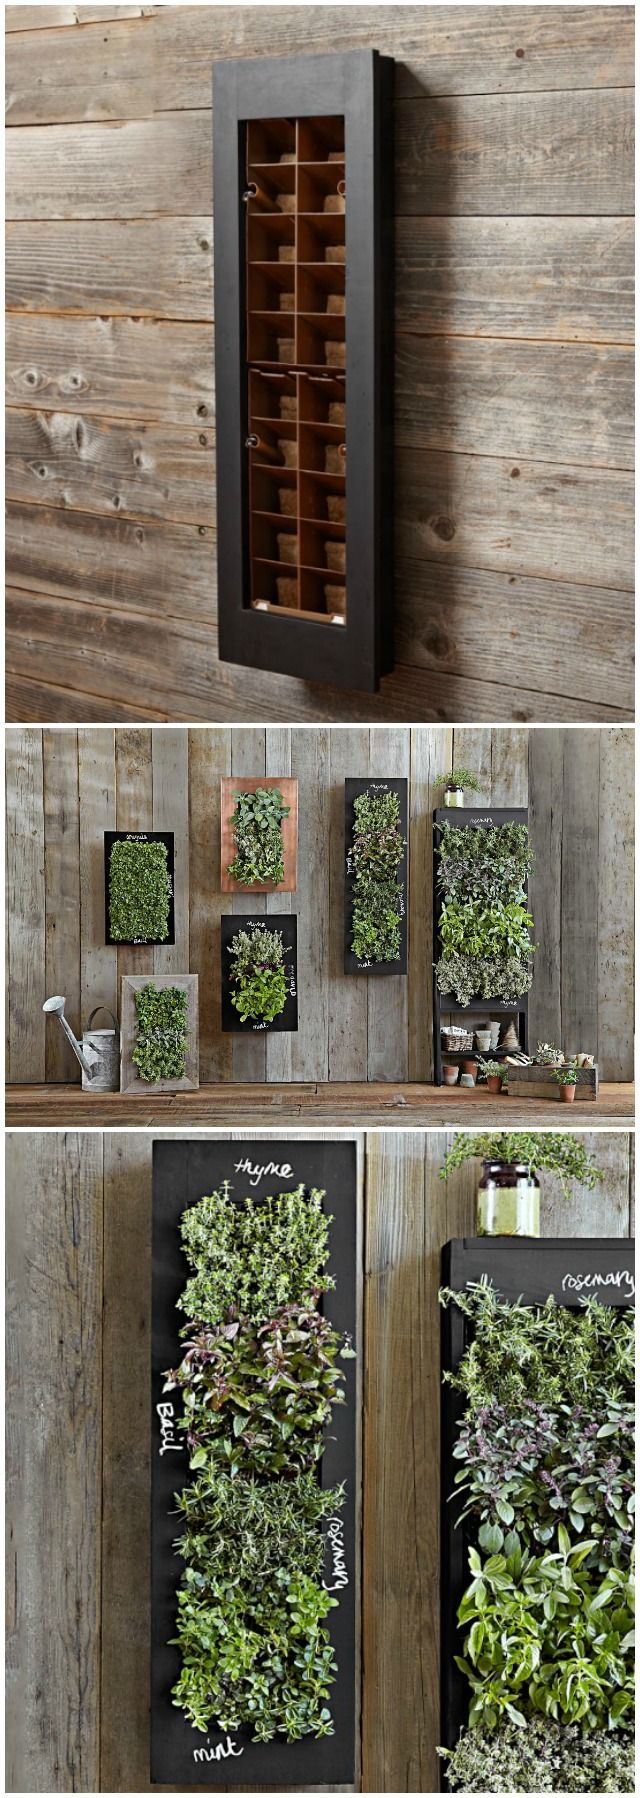 rectangular chalkboard wall planter bring your wall to on indoor herb garden diy apartments living walls id=59057